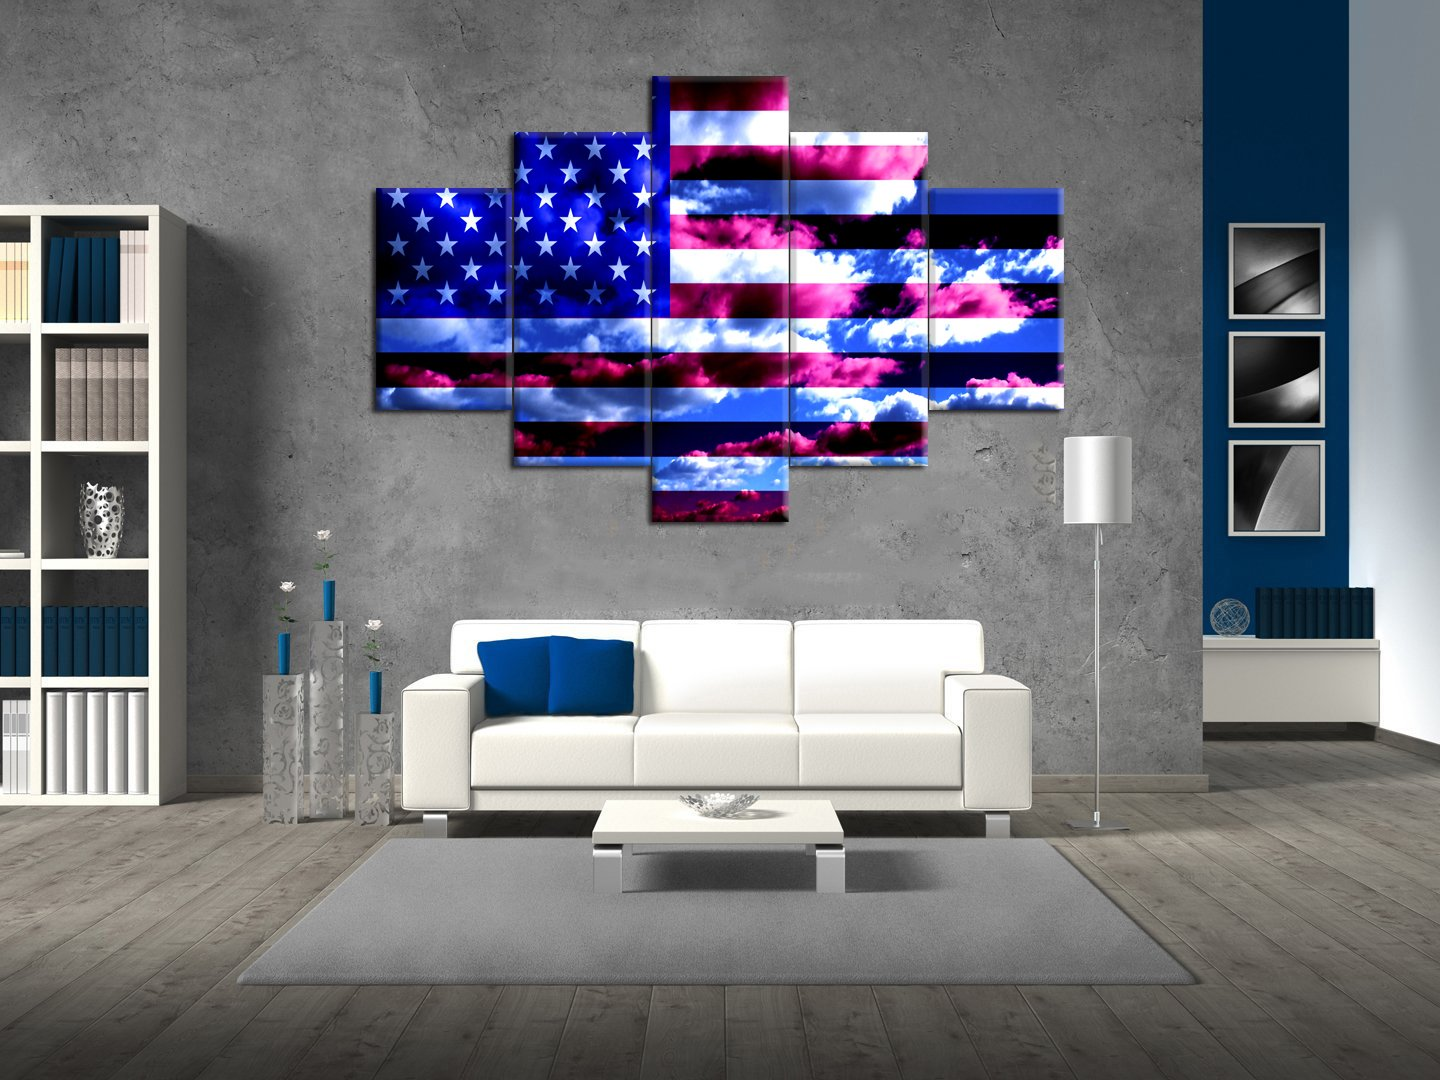 Extra Large American Flag Painting on Canvas Blue Sky Print Pictures Posters and Prints Framed Wooden Modern Wall Art for Living Room Bedroom Home Decor Gallery-wrapped Art 5 Panel Set(60''W x 40''H) by Yatsen Bridge